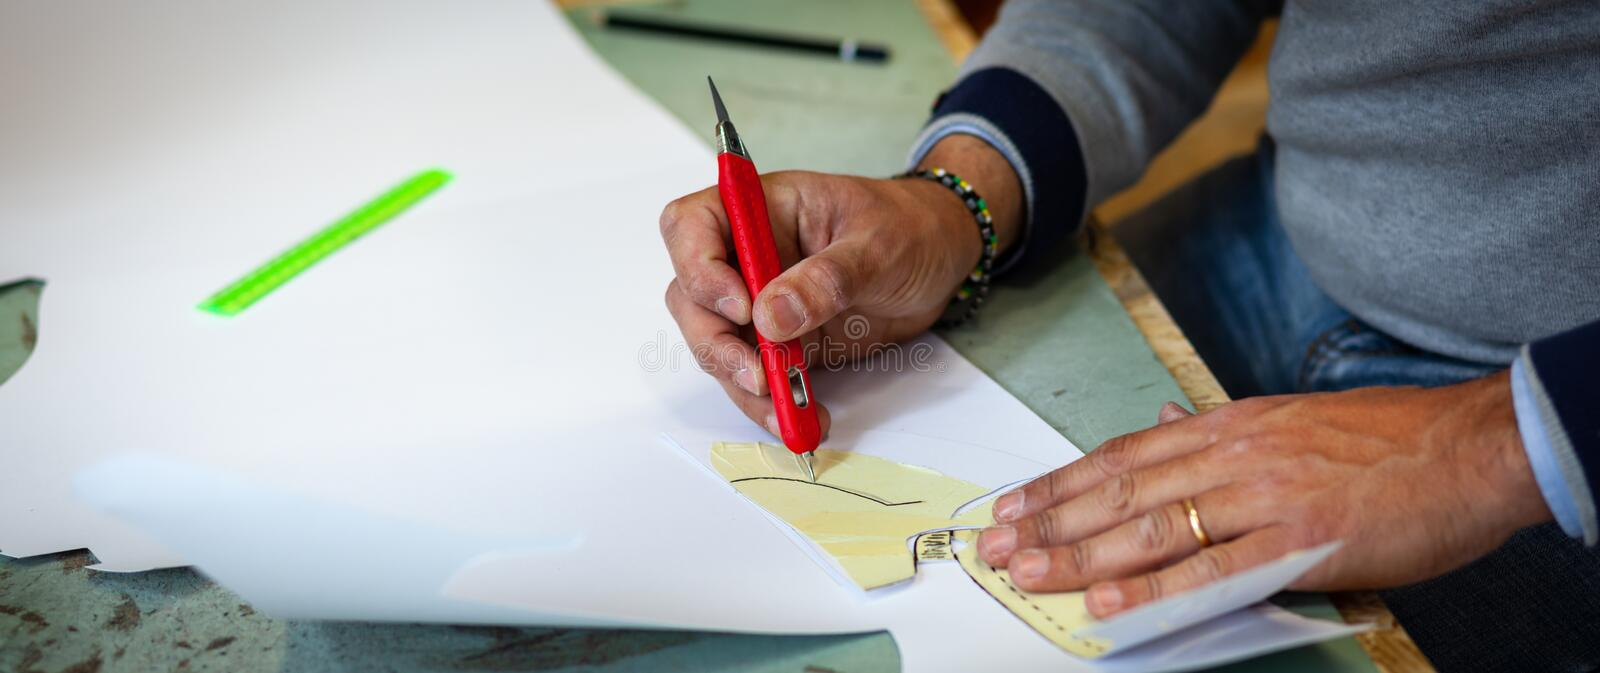 Shoe designer working with paper models for leather cutting. Shoemaker or shoe designer working with lwith paper models for leather cutting royalty free stock photos